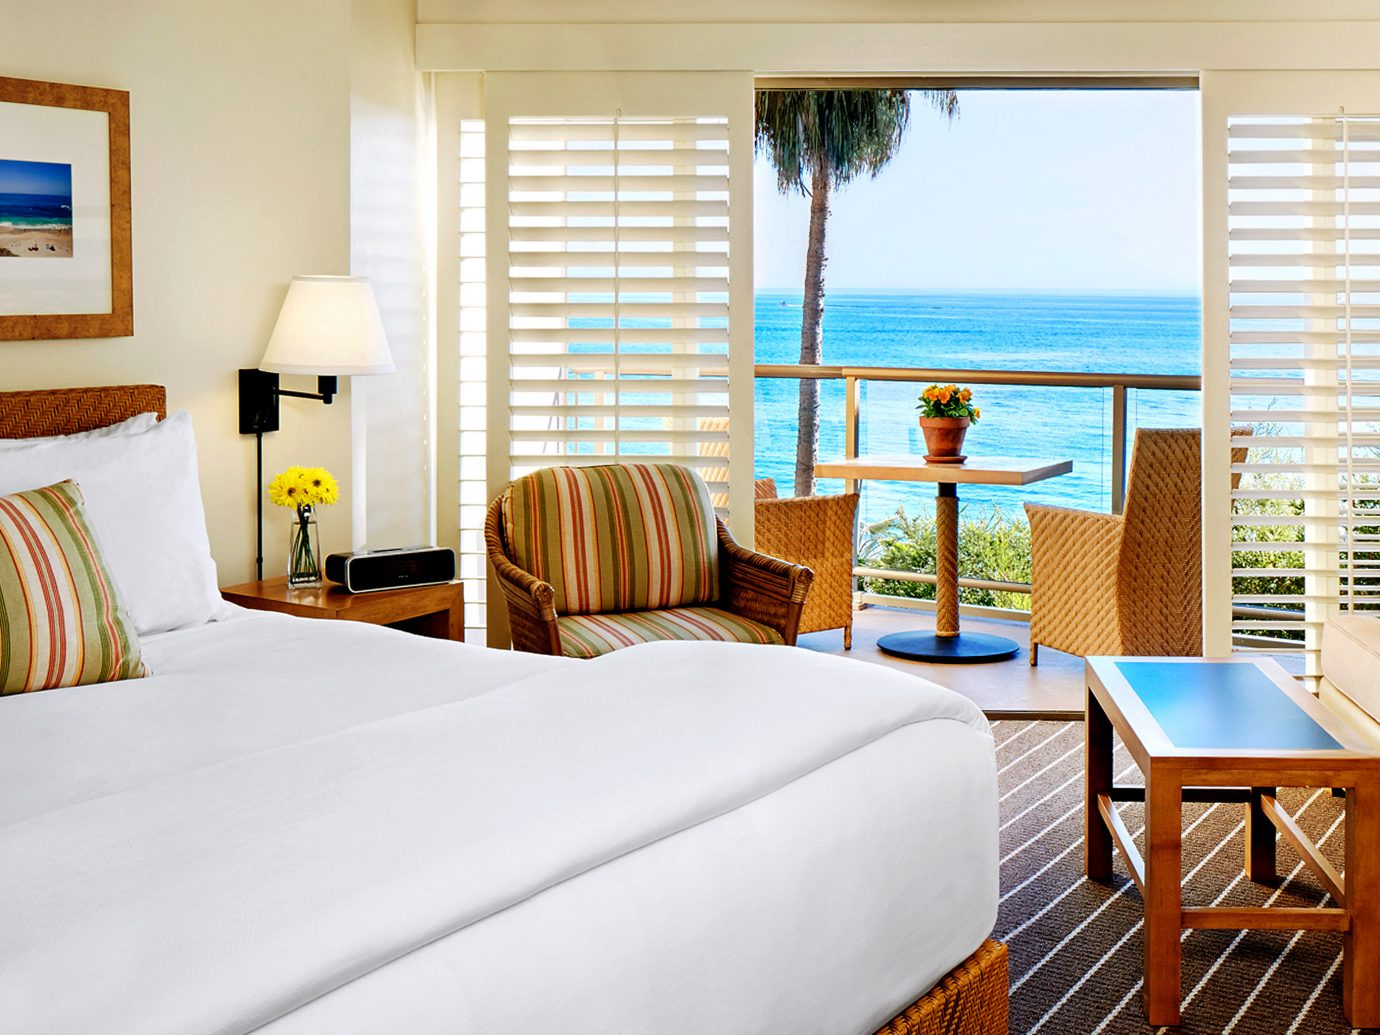 Balcony Beachfront Bedroom Classic Hotels Inn Living Scenic views Weekend Getaways indoor room wall sofa floor window bed hotel property chair Suite estate cottage real estate interior design white Resort home furniture nice apartment Villa decorated area Modern clean